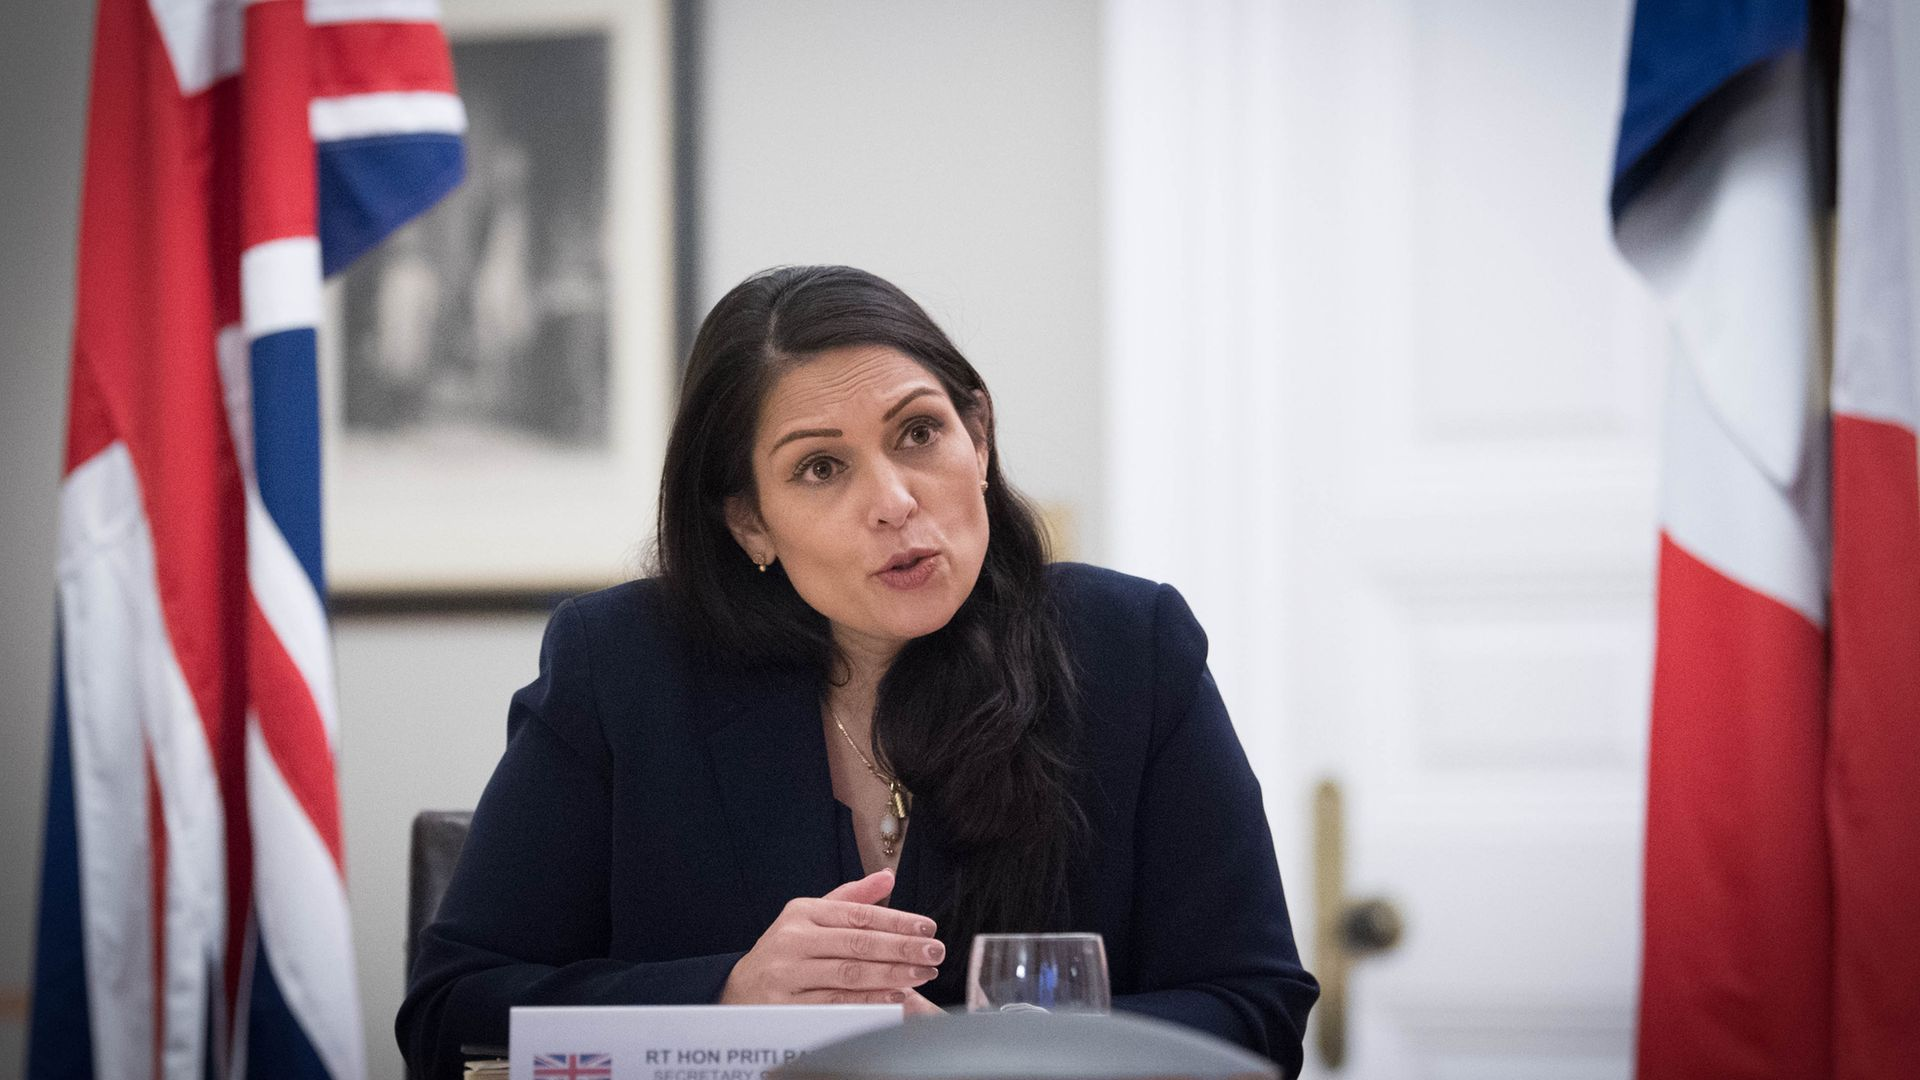 Home Secretary Priti Patel at the Home Office in central London - Credit: PA